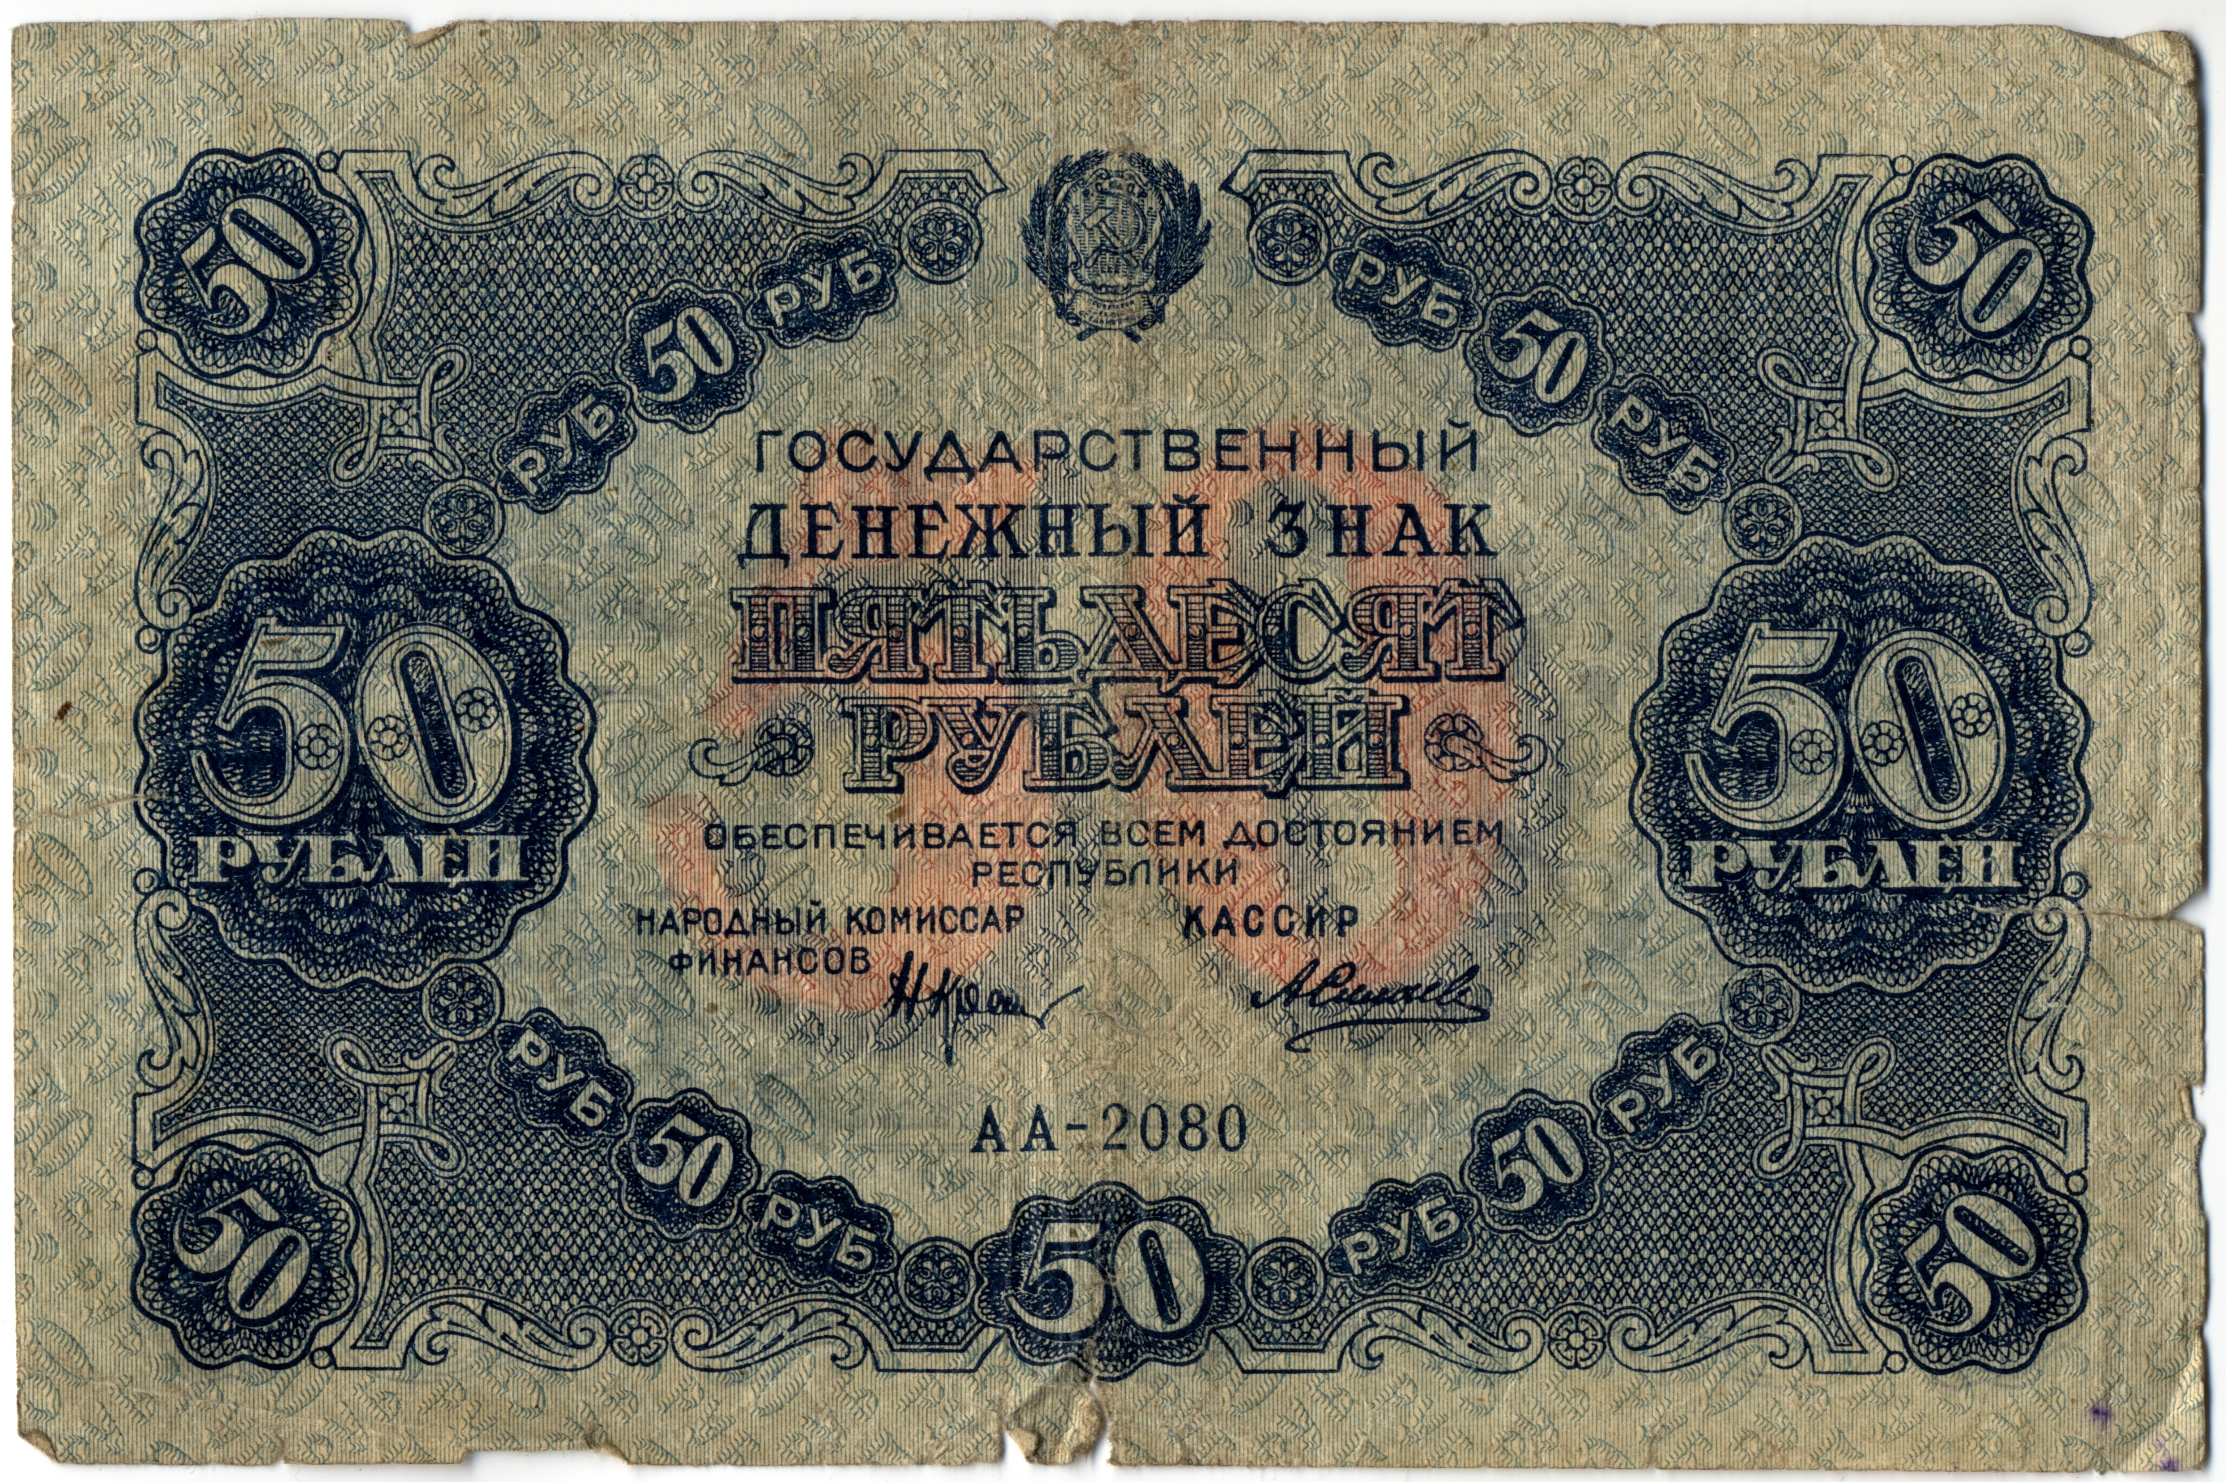 http://www.ludios.org/ivank/photos/Banknotes%20-%20Russia/49-A.jpg